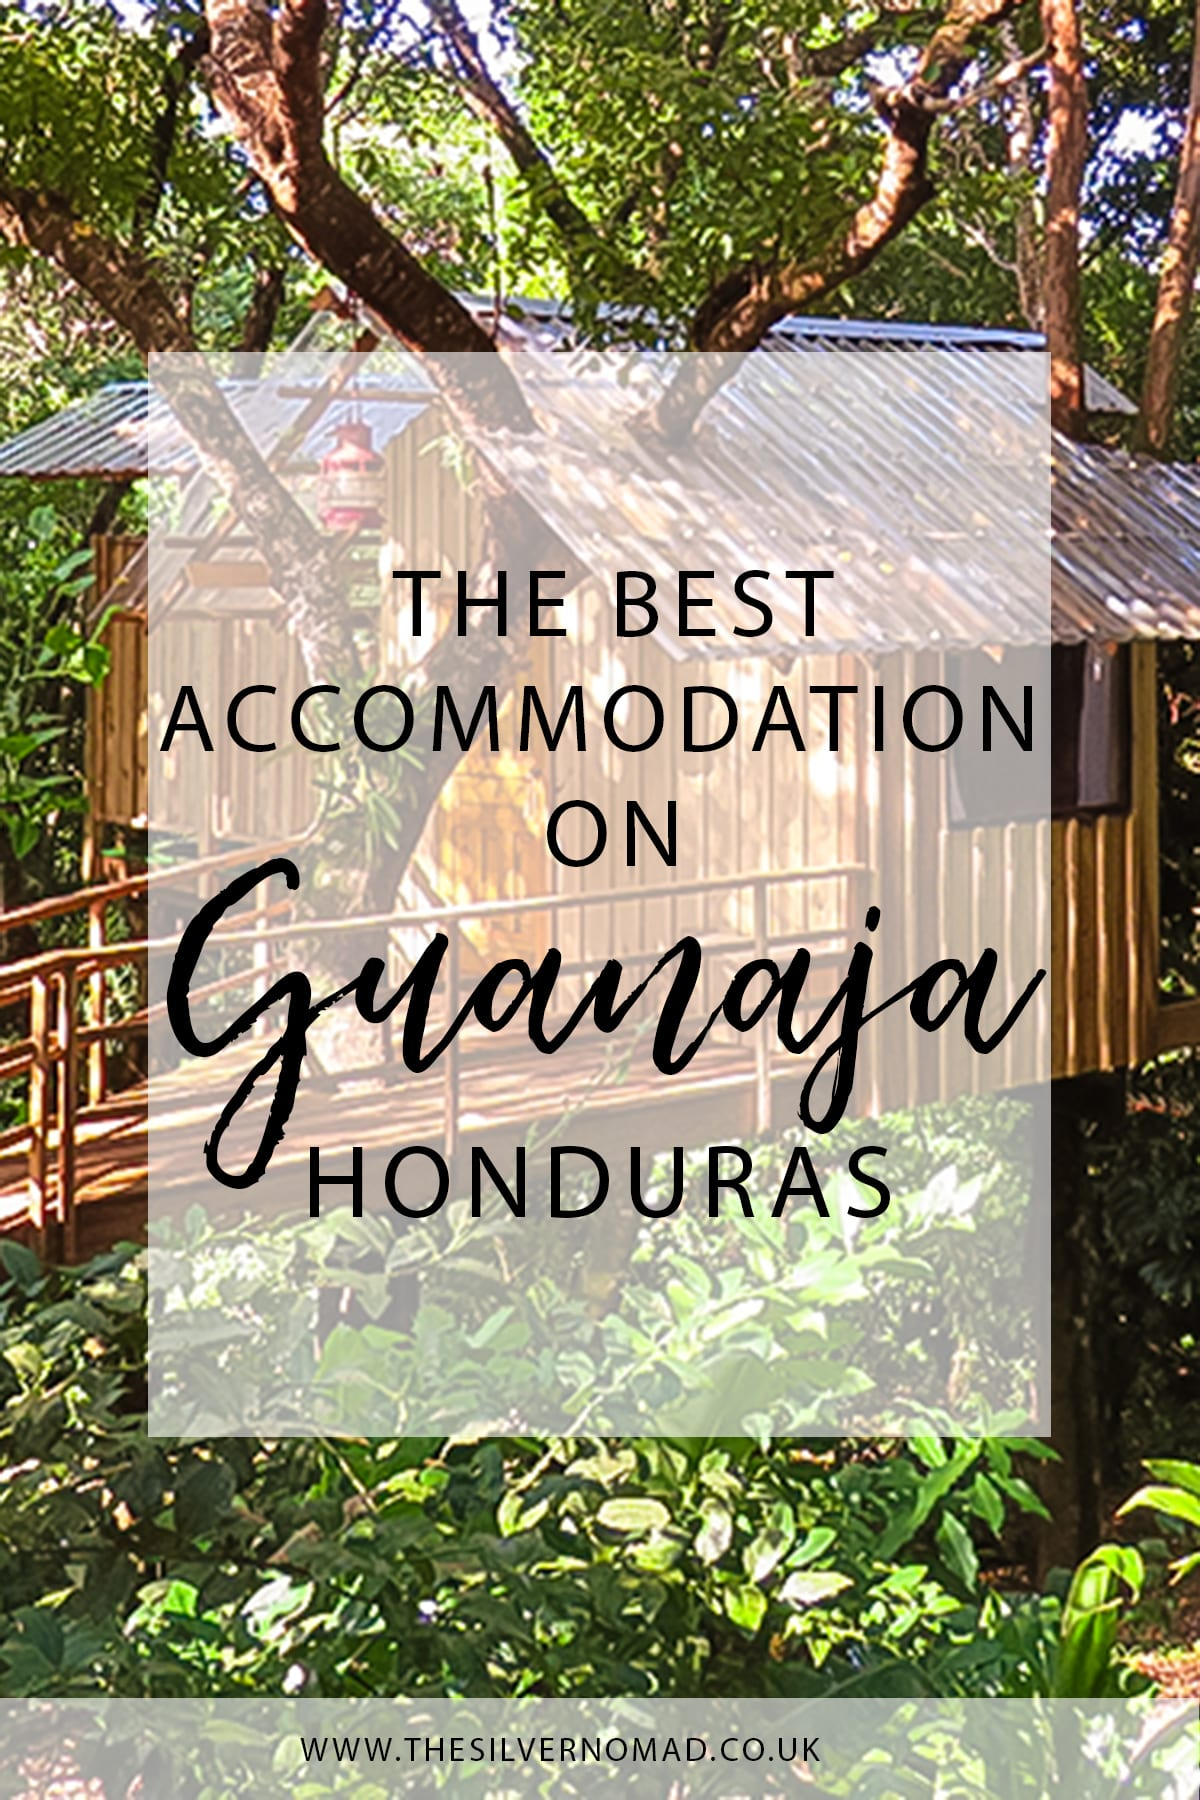 The best accommodation on Guanaja Honduras with Treehouse in the background